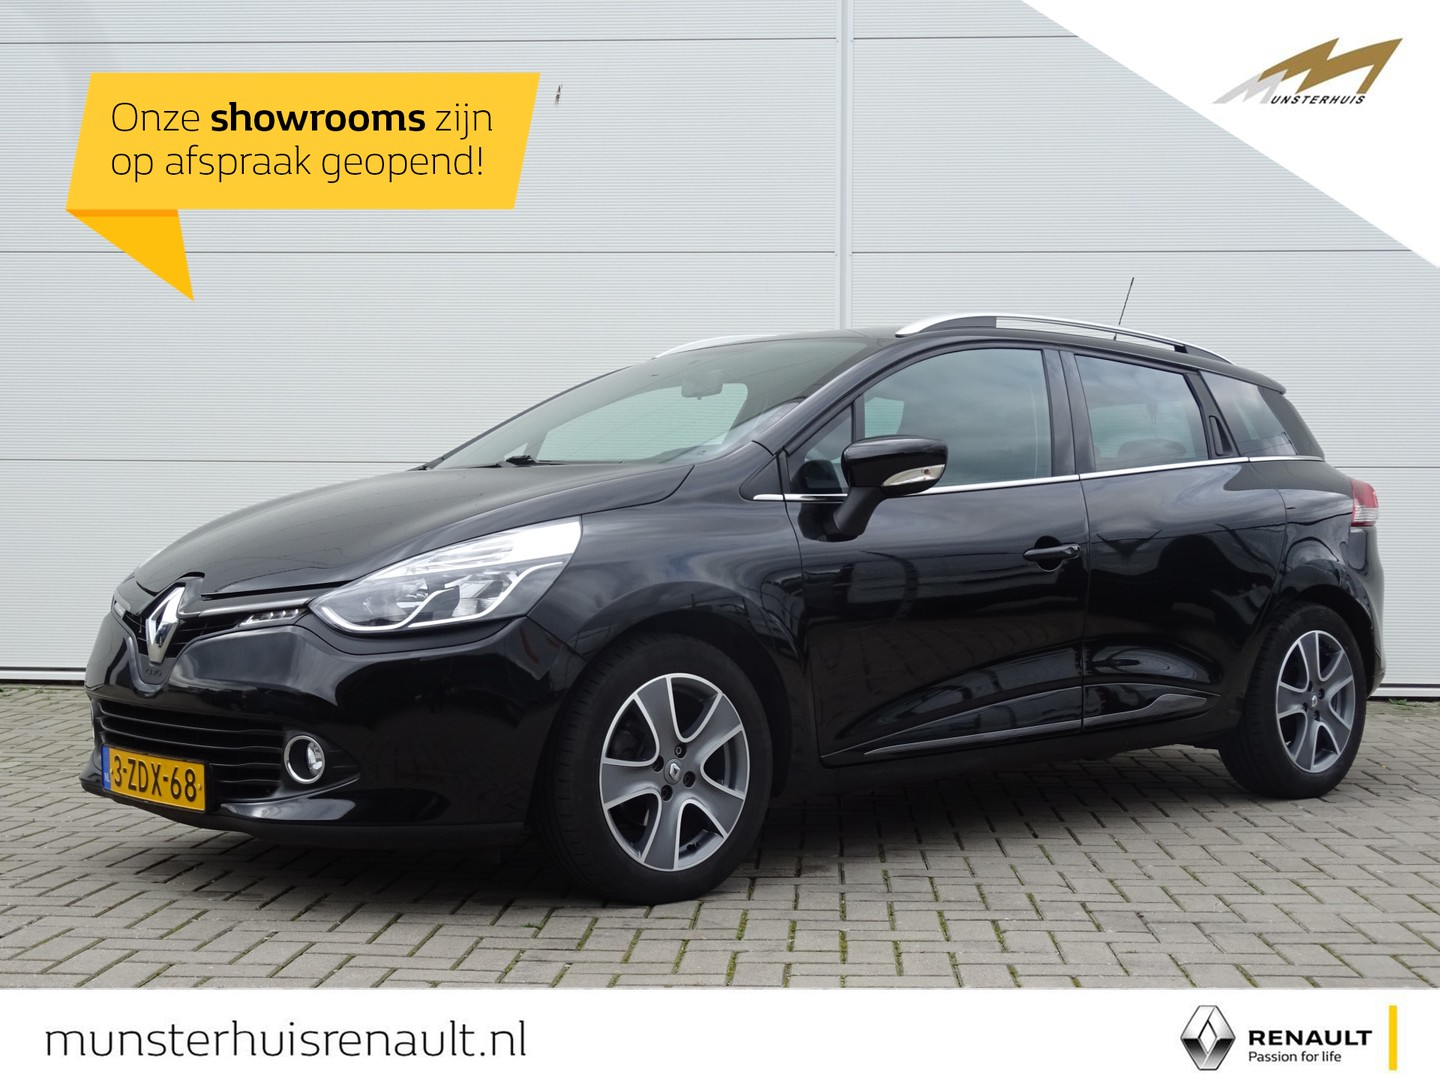 Renault Clio Estate energy tce 90 night&day - wordt in opdracht verkocht